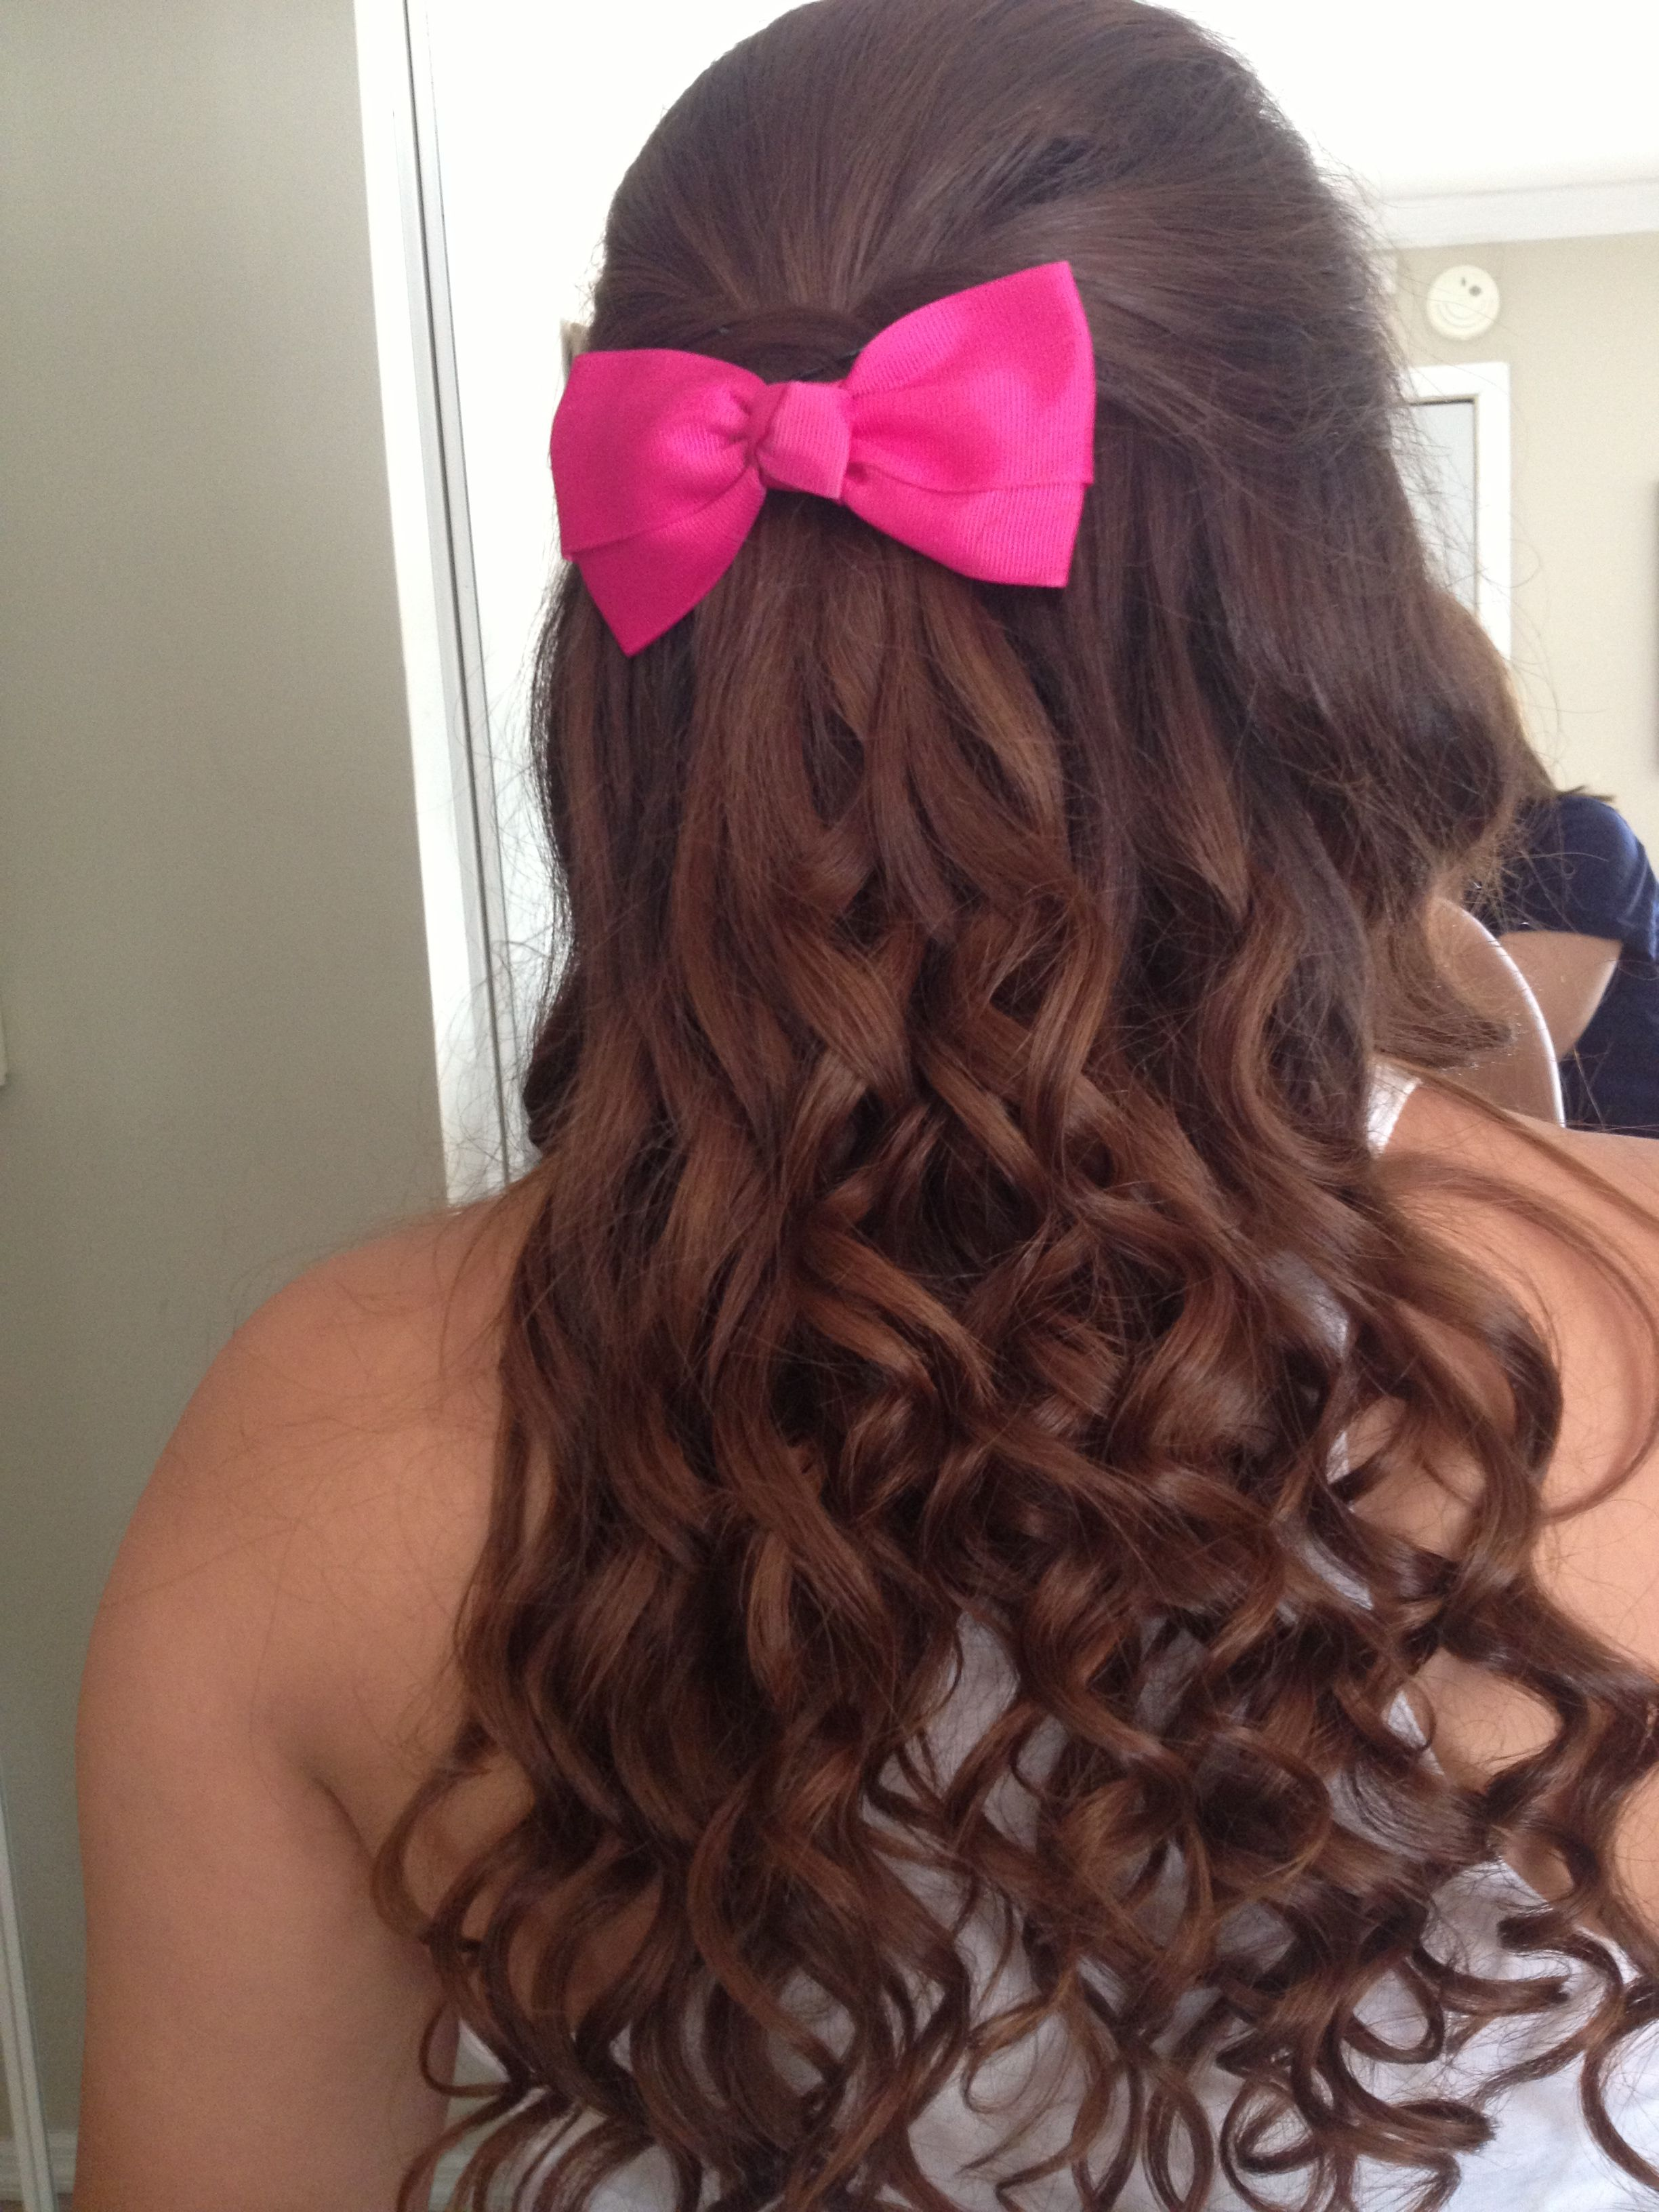 Small Curls From Curling Wand And A Bump With A Cute Pink Bow I M Doing This To My Hair Tomorrow Wand Hairstyles Hair Styles Curling Hair With Wand